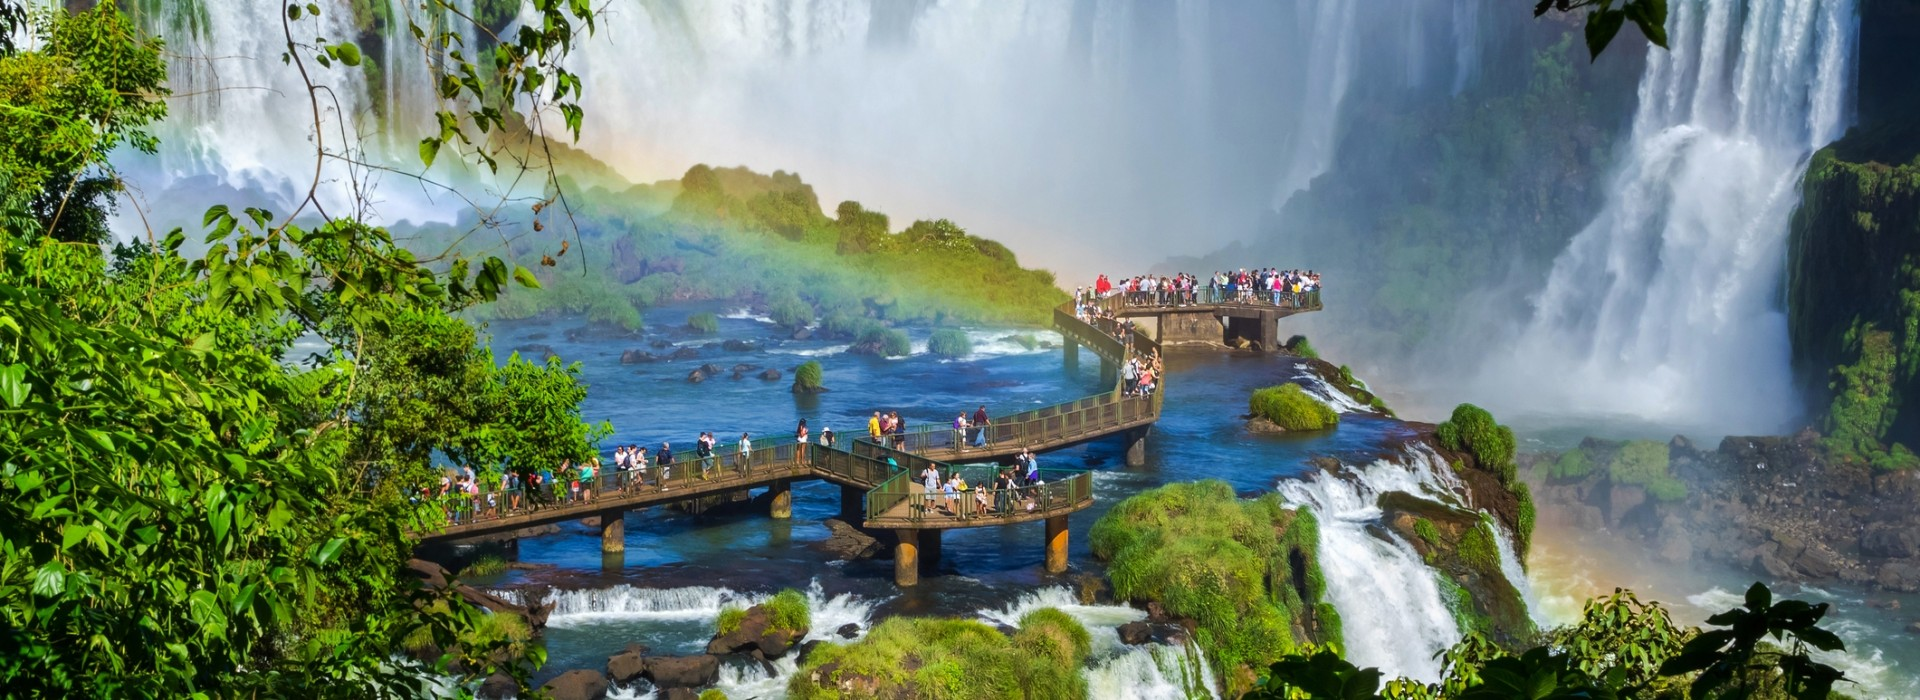 Tourists at the Iguazu Falls in Foz do Iguacu, Brazil